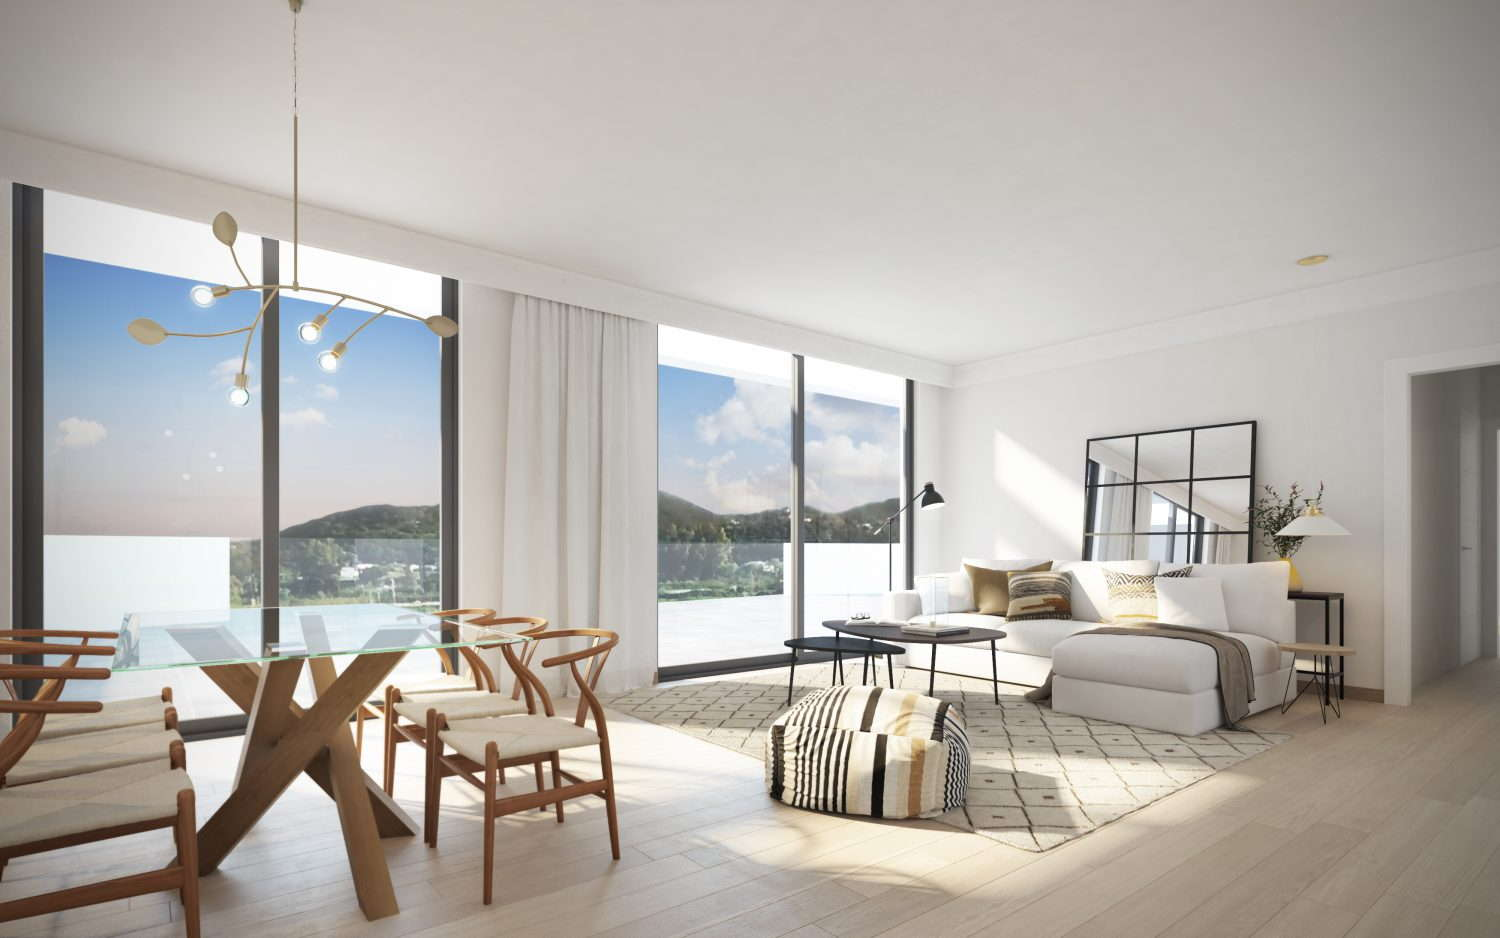 Apartment for sale in Mijas Fuengirola new development in a nice residential area